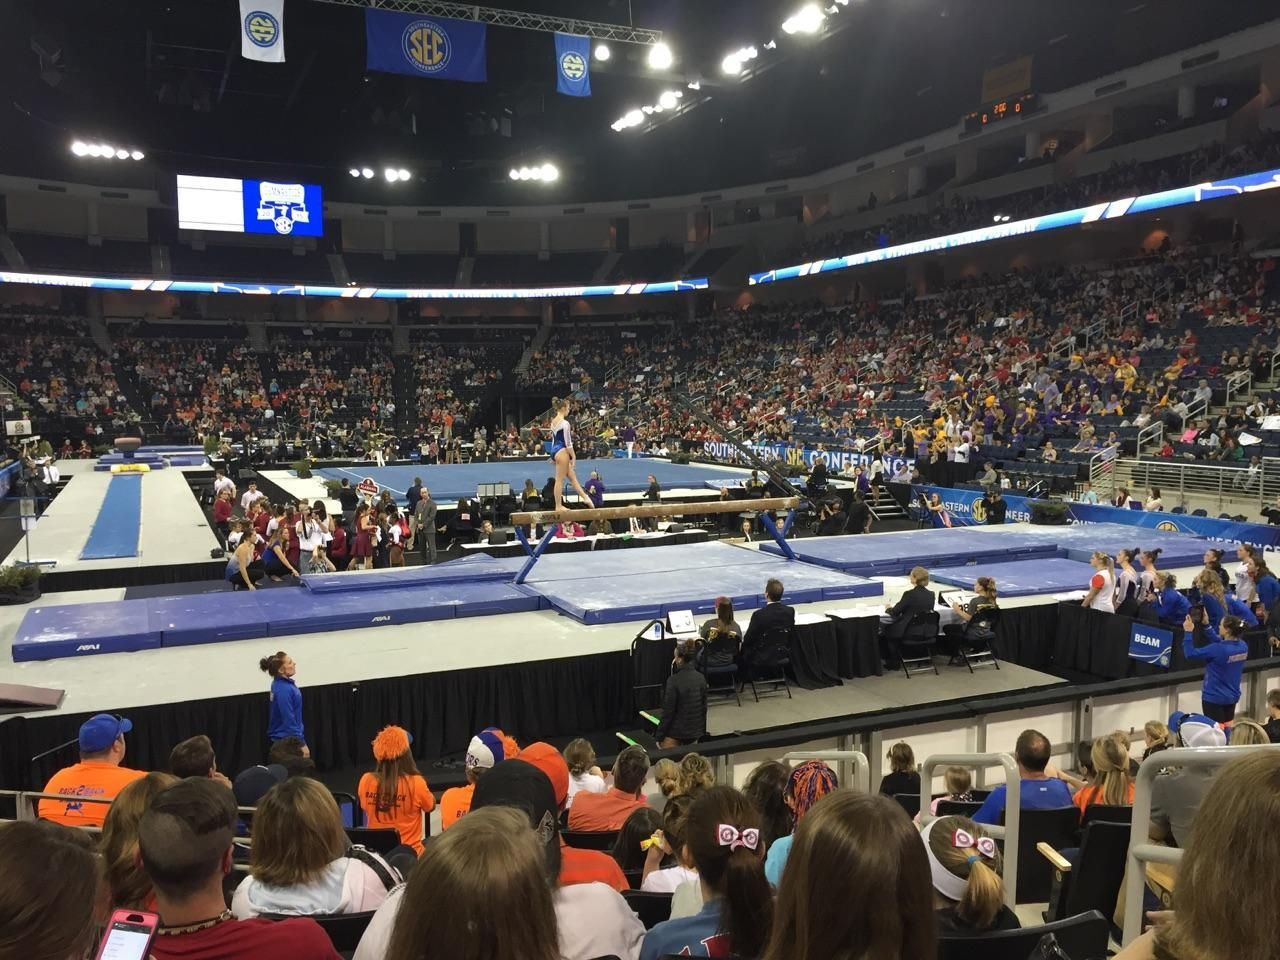 Amanda attended the 2015 SEC Gymnastics Championship this past weekend. Congratulations to the University of Alabama for coming in 1st!